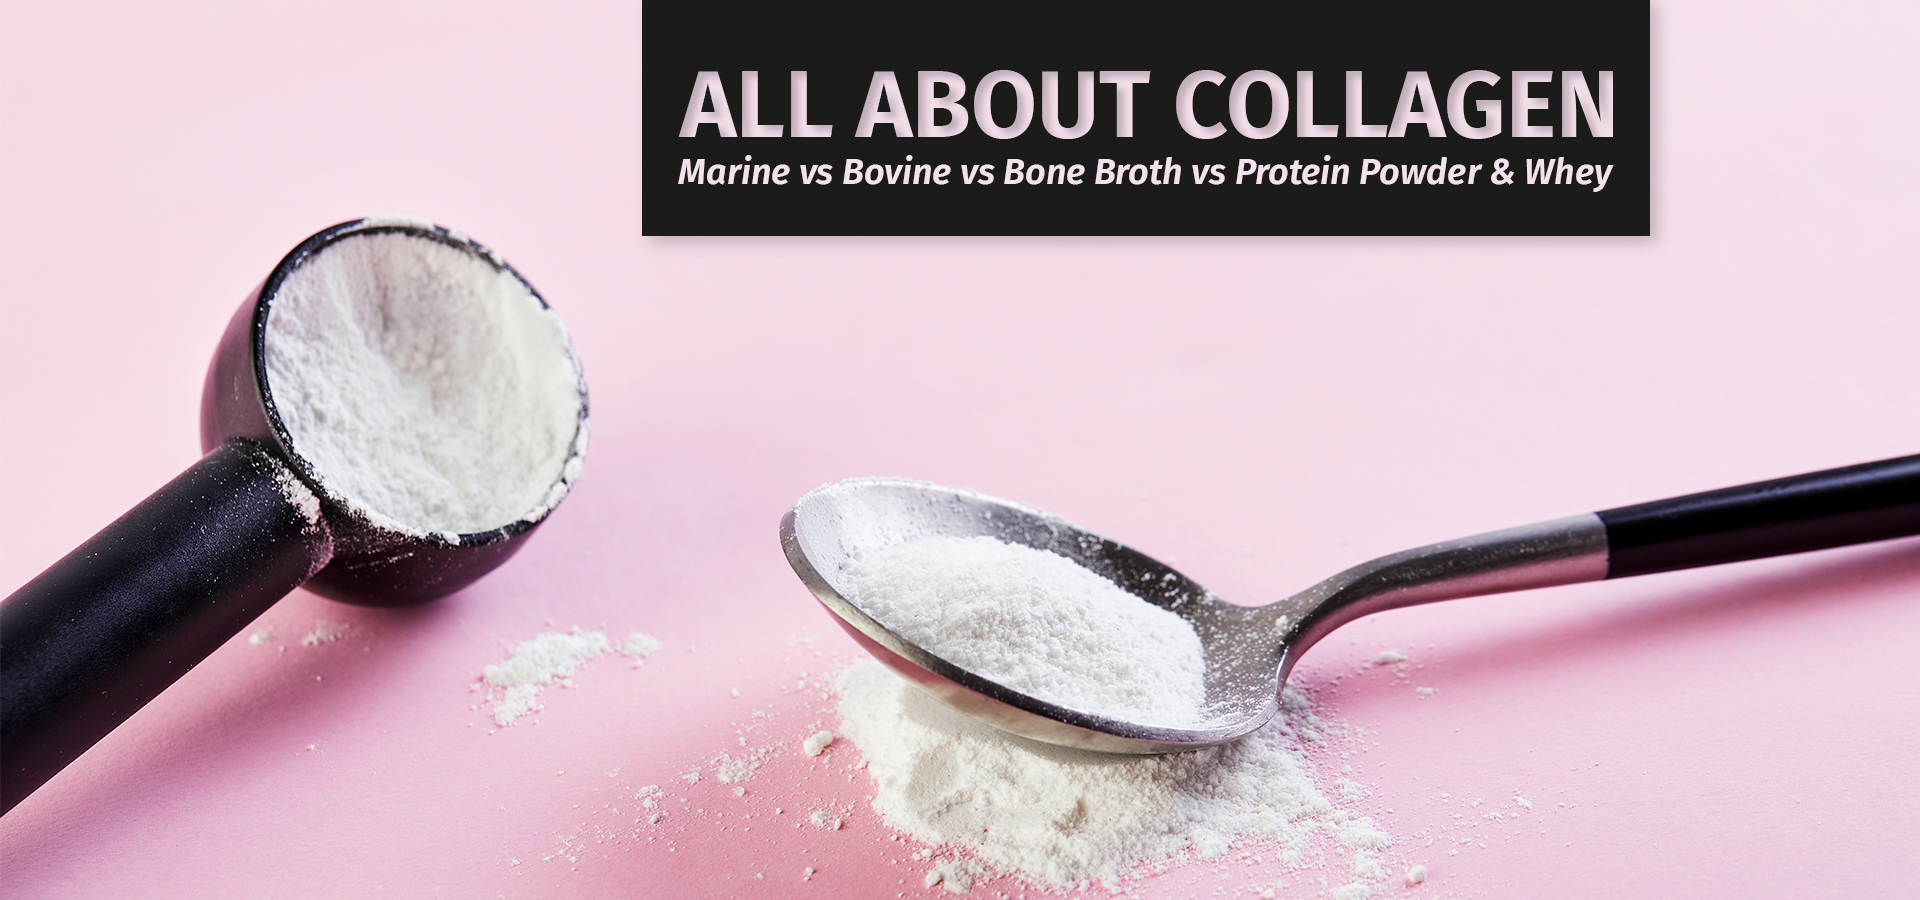 All about collagen